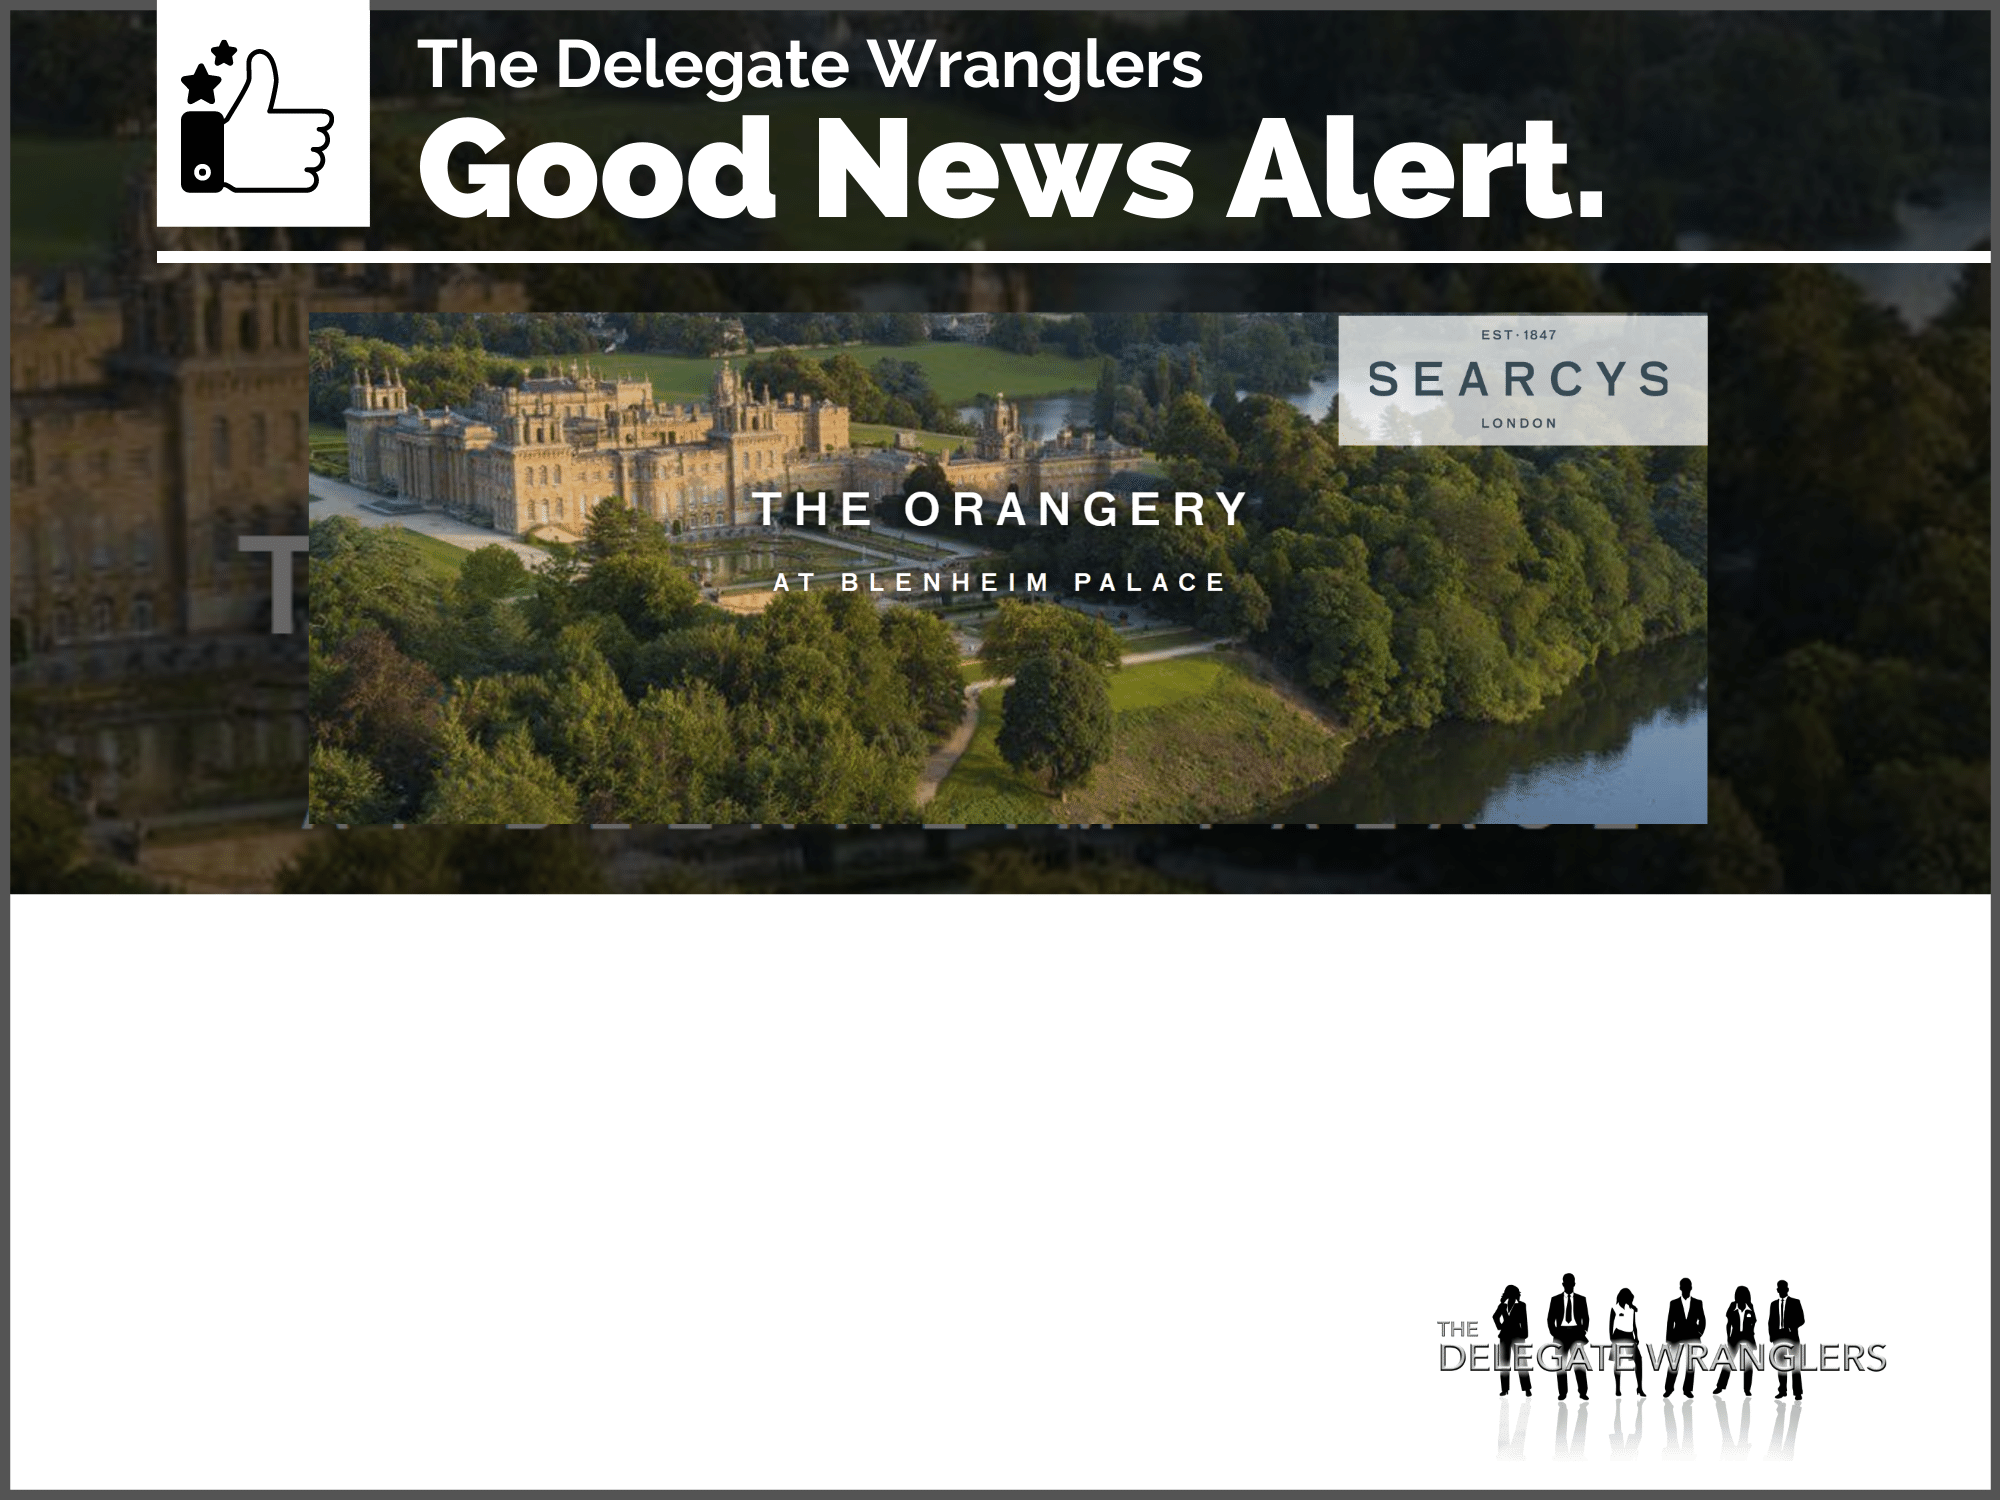 Searcys launches al fresco dining at Blenheim Palace from 4 July